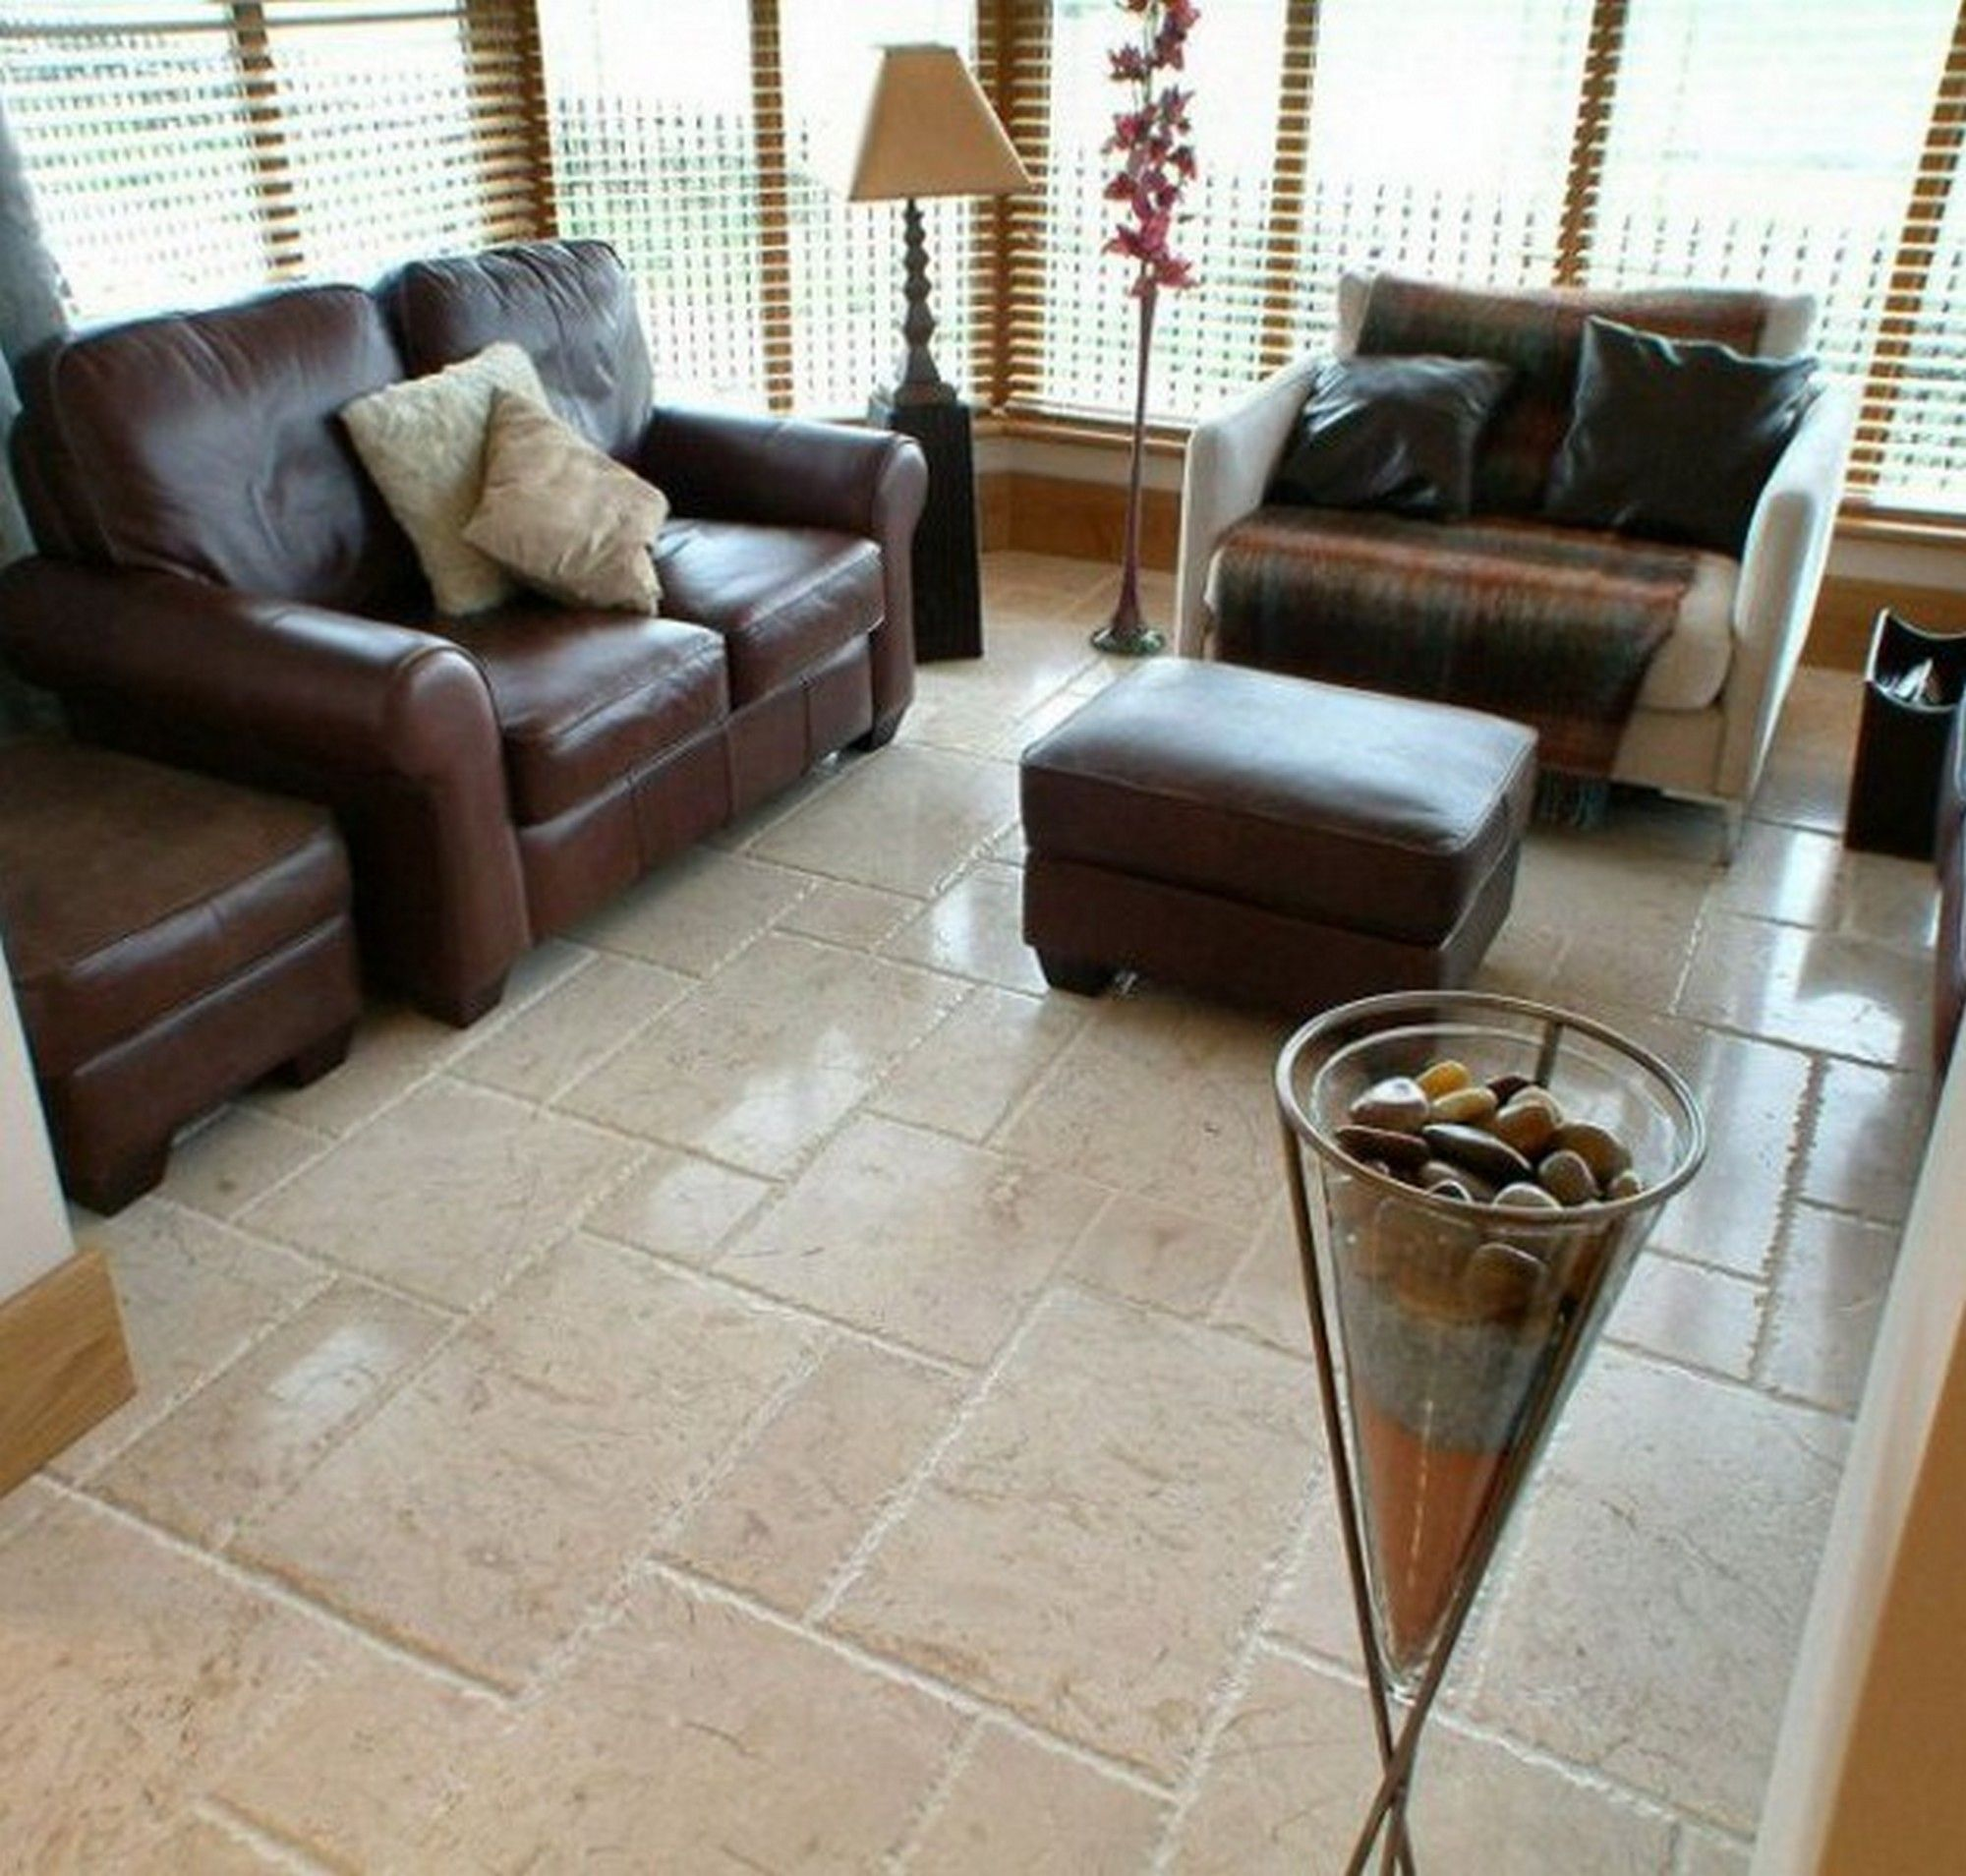 terrific outoftheordinary marble floor tile for living room - Living Room Floor Tiles